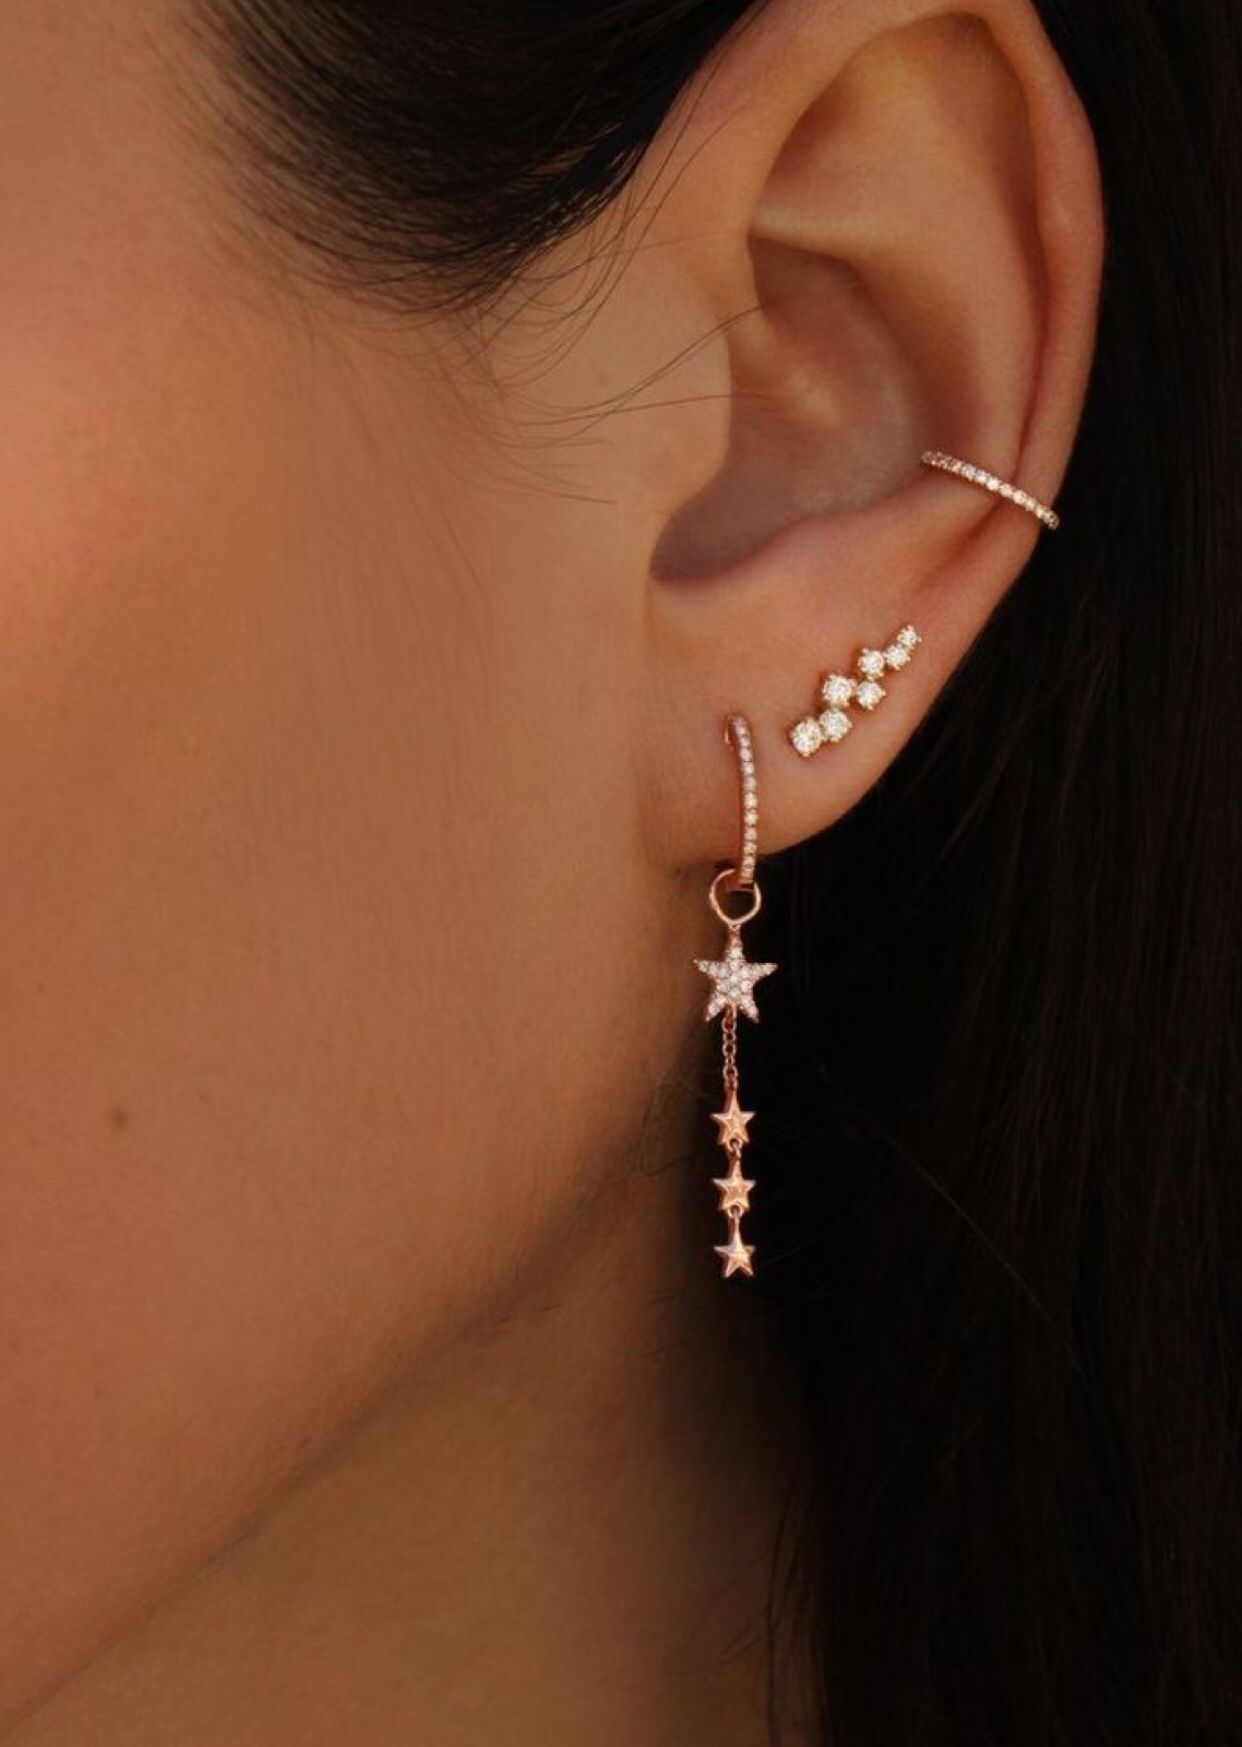 e5ec12e8cd378 ɪsᴀʙᴇʟʟᴀғᴀʙᴀ Star dangle earrings gold with extra piercings ...